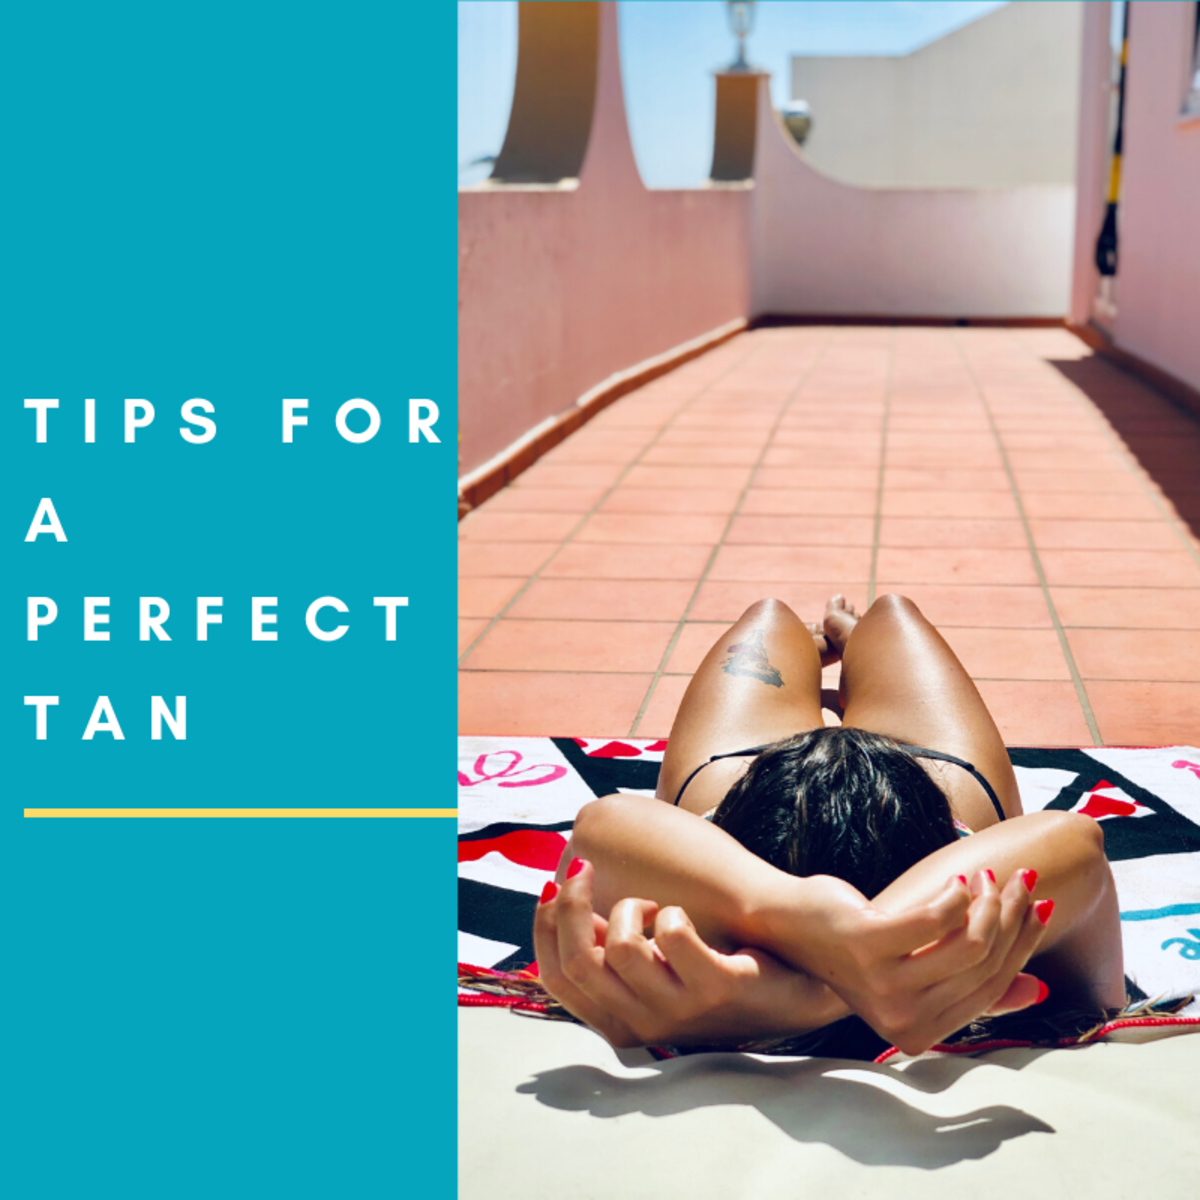 Tips for a Perfect Tan—Even for the Fair-Skinned